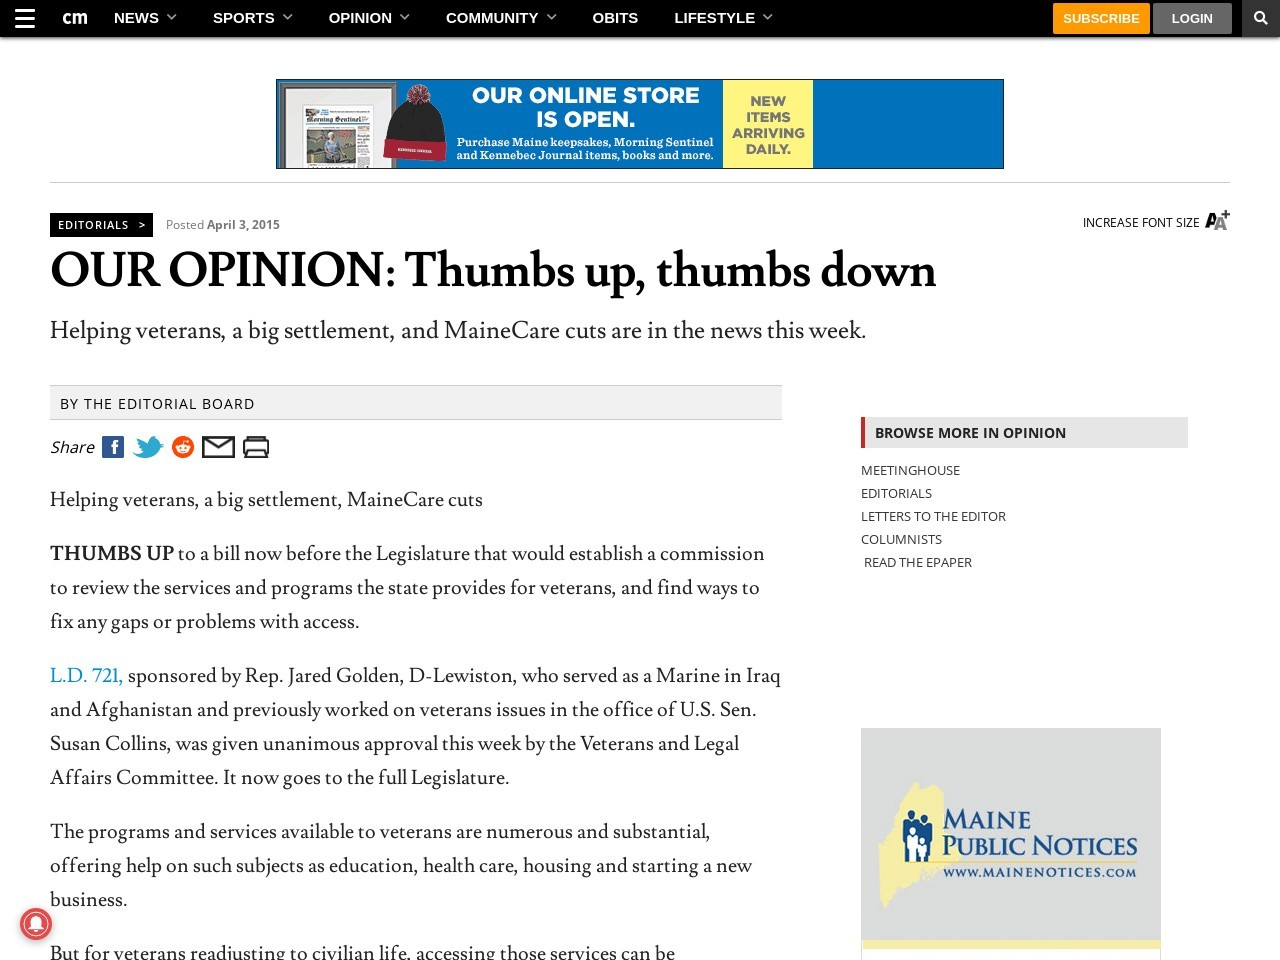 OUR OPINION: Thumbs up, thumbs down